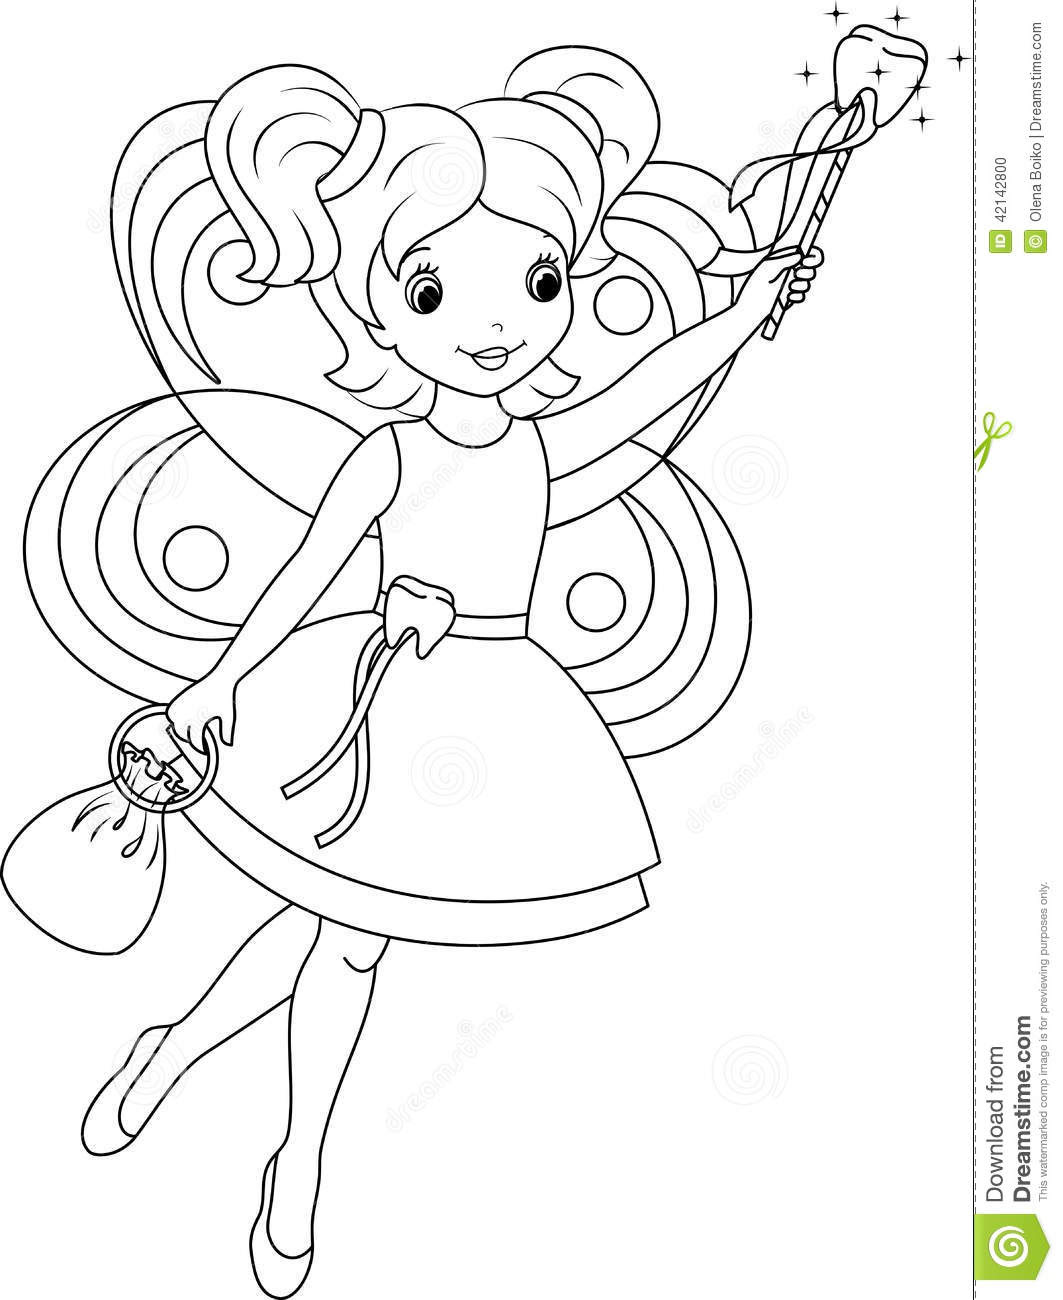 Photos - Bild - Galeria: TOOTH FAIRY COLORING PAGES